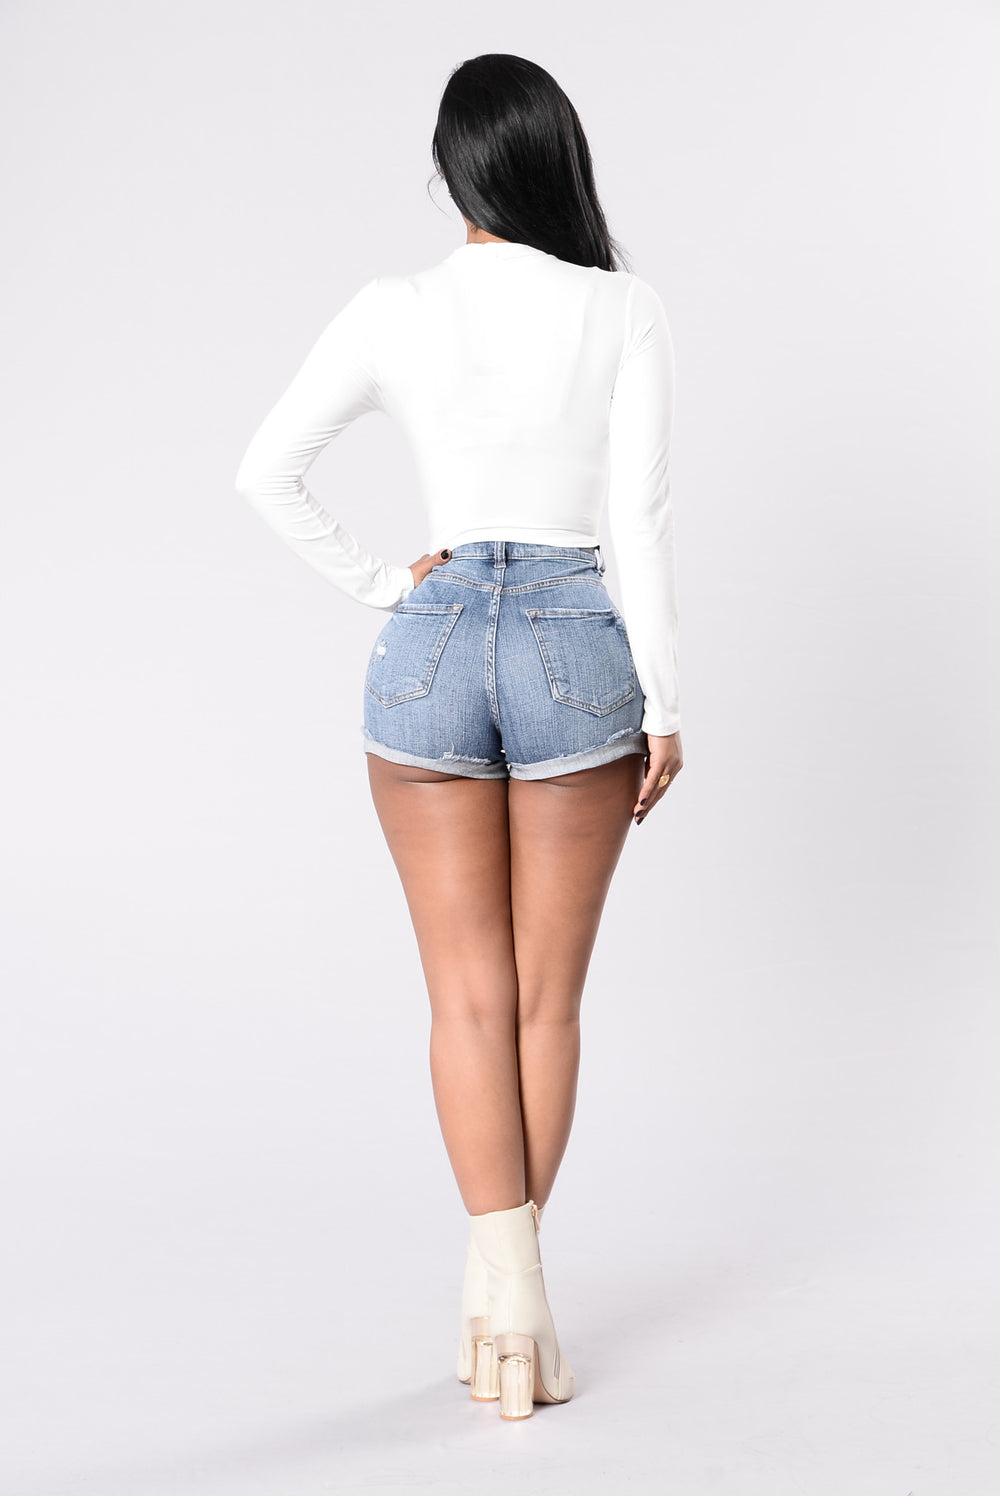 He Calls Me Shorty Shorts - Medium Dark